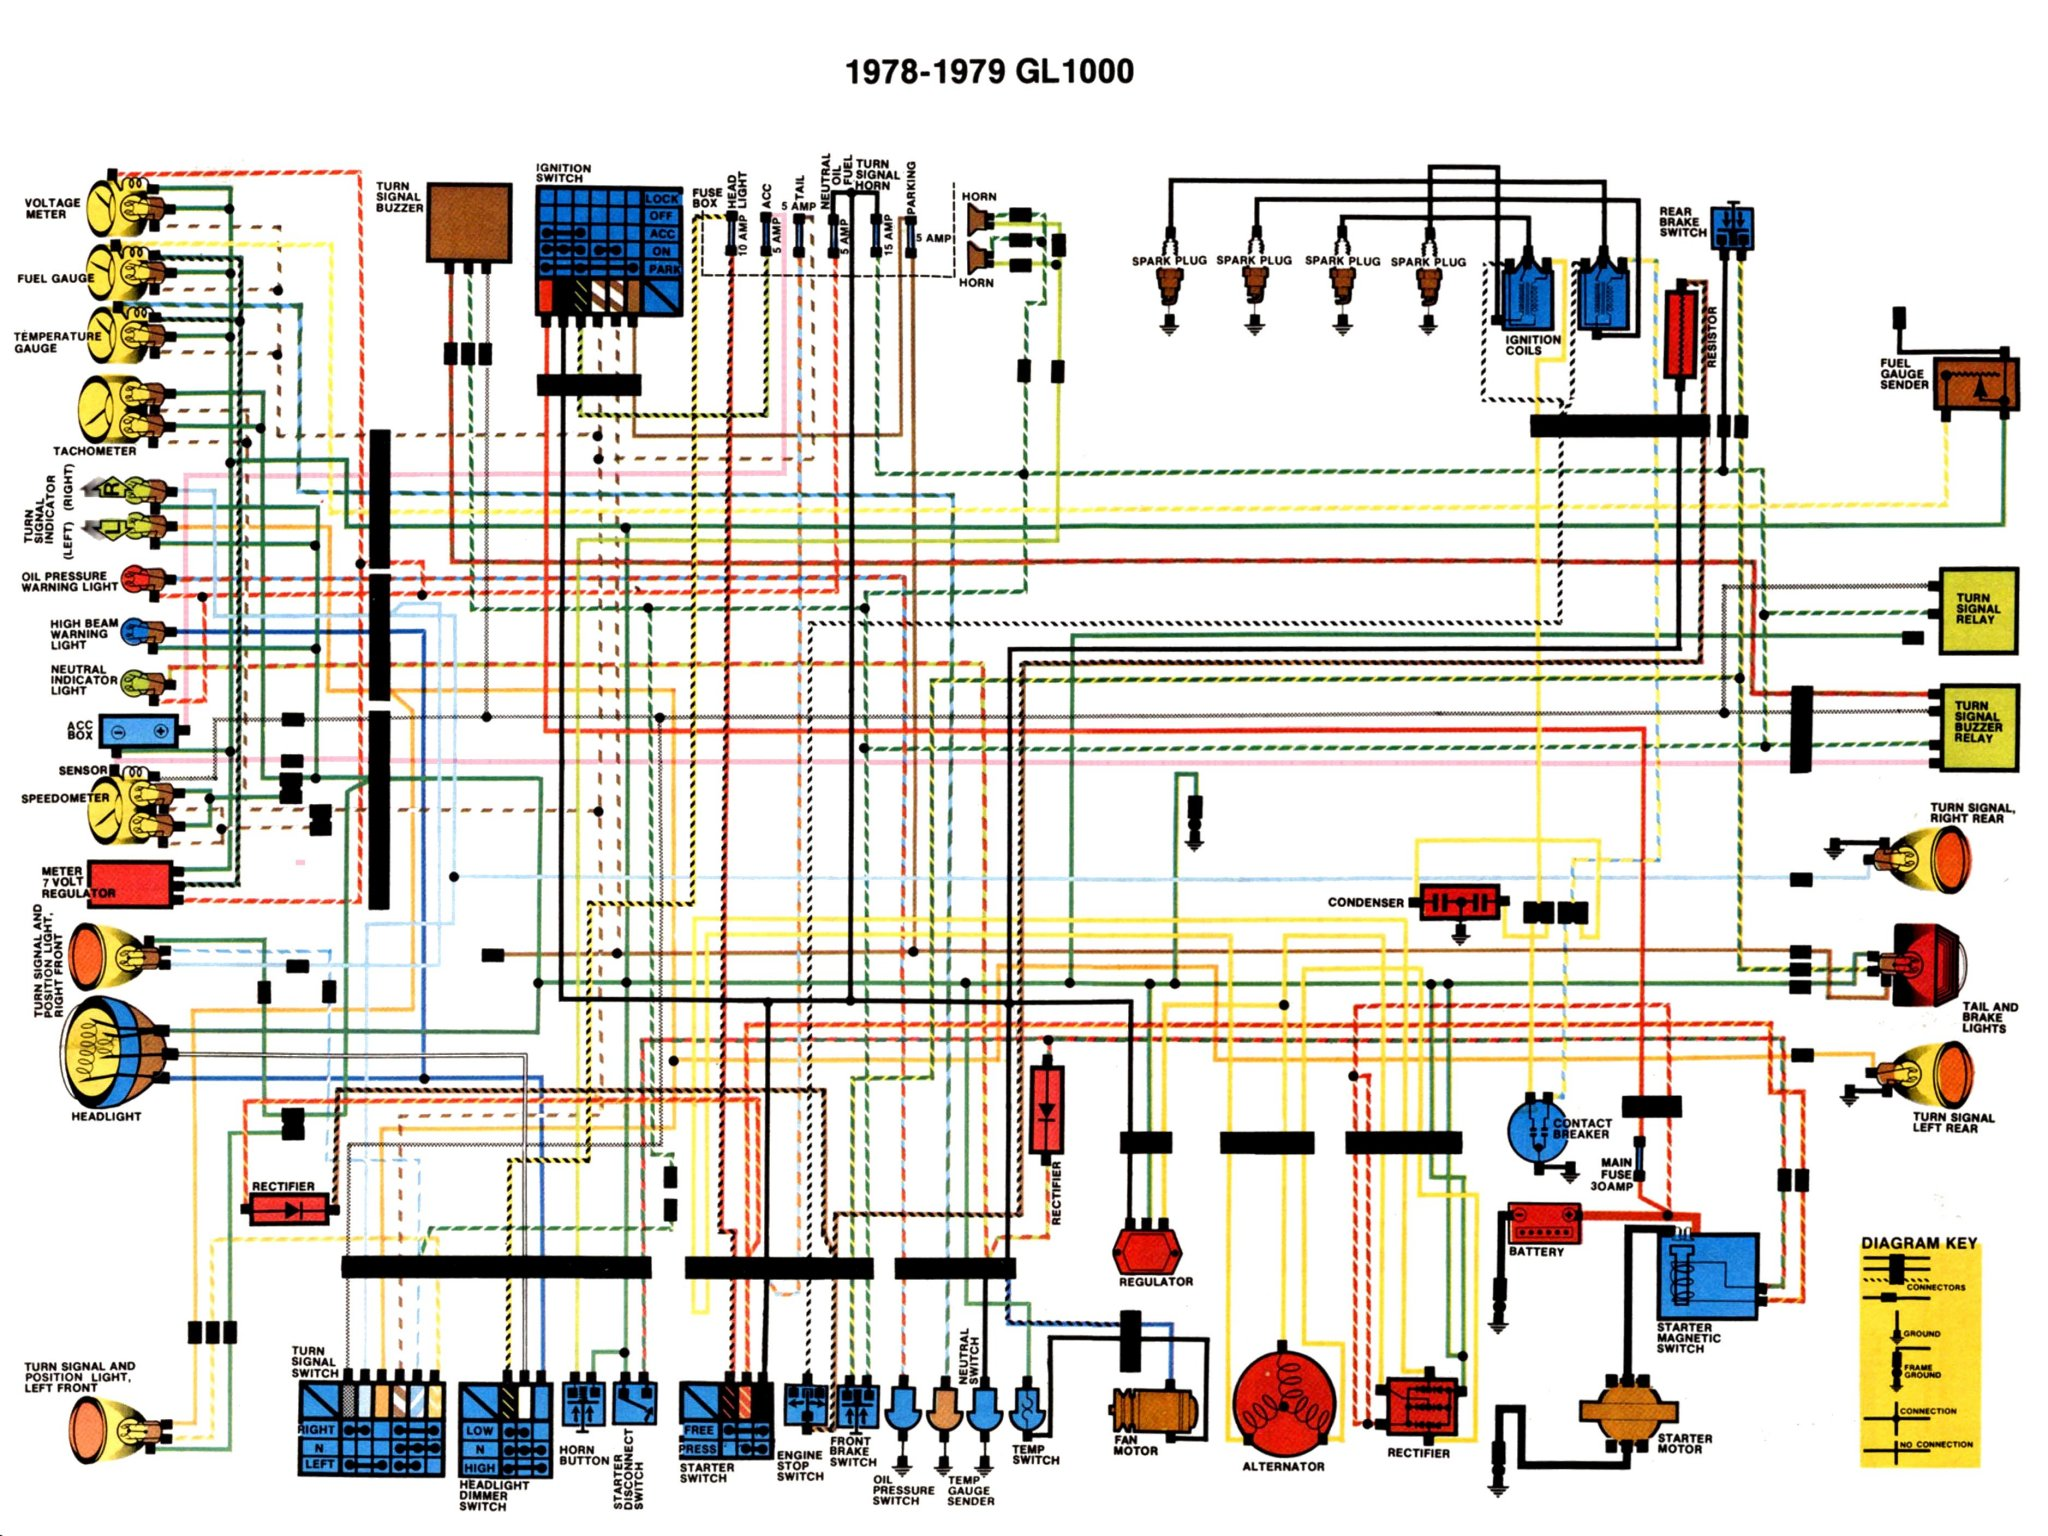 1978_79_GL1000_Colour_Schematic?m=1389574447 1978 79 gl1000 colour schematic b  at edmiracle.co